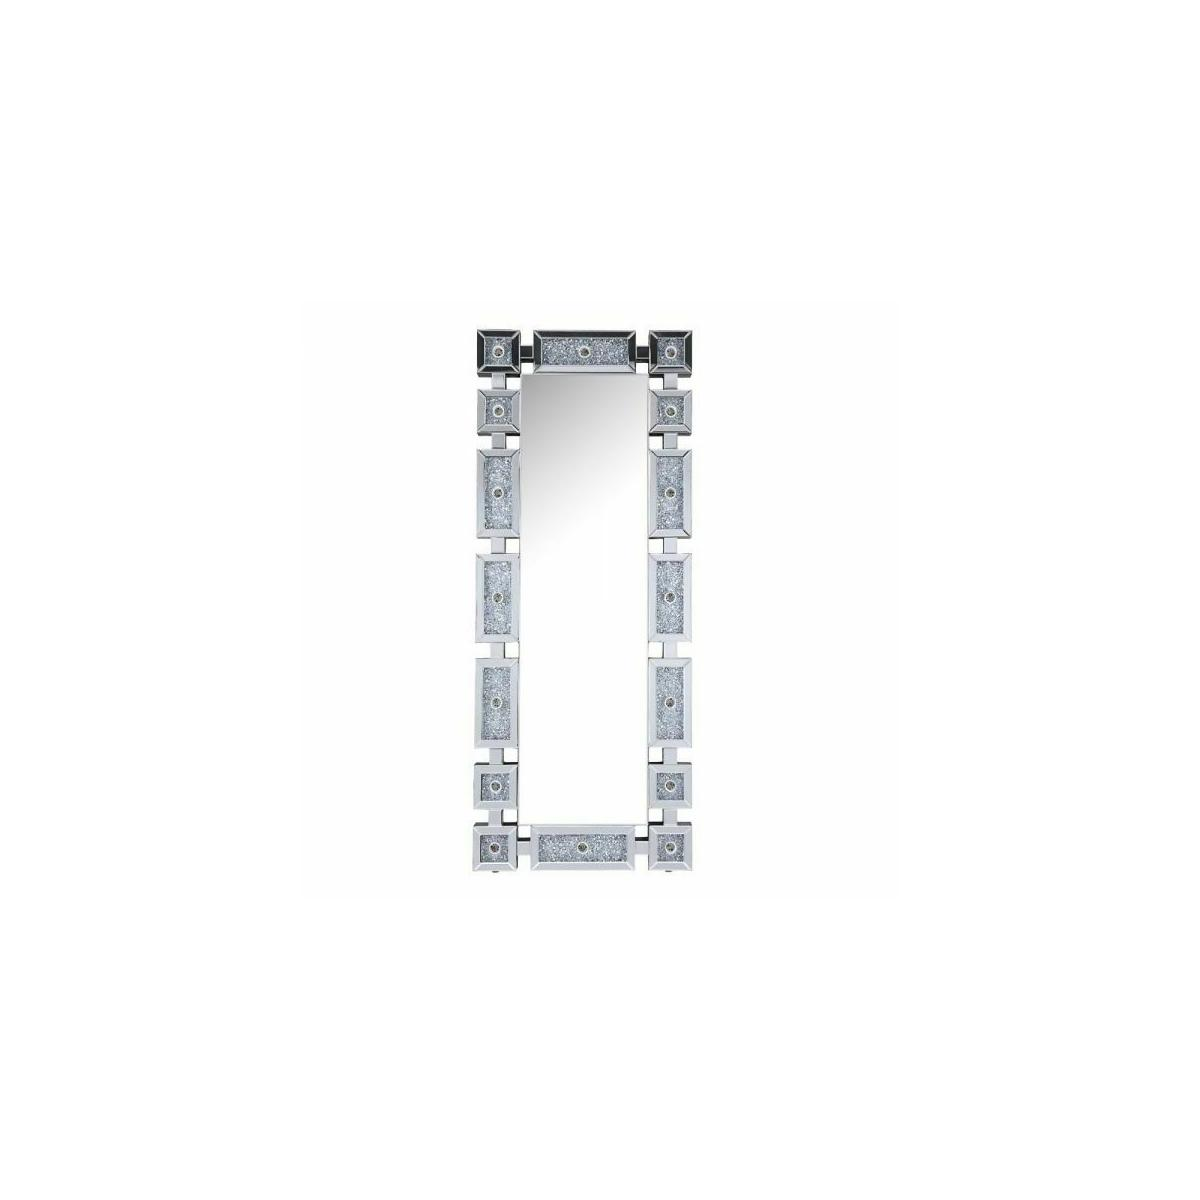 ACME Noralie Wall Decor - 97756 - Glam - LED Light, Mirror, Glass, MDF, Faux Diamonds (Acrylic) - Mirrored and Faux Diamonds